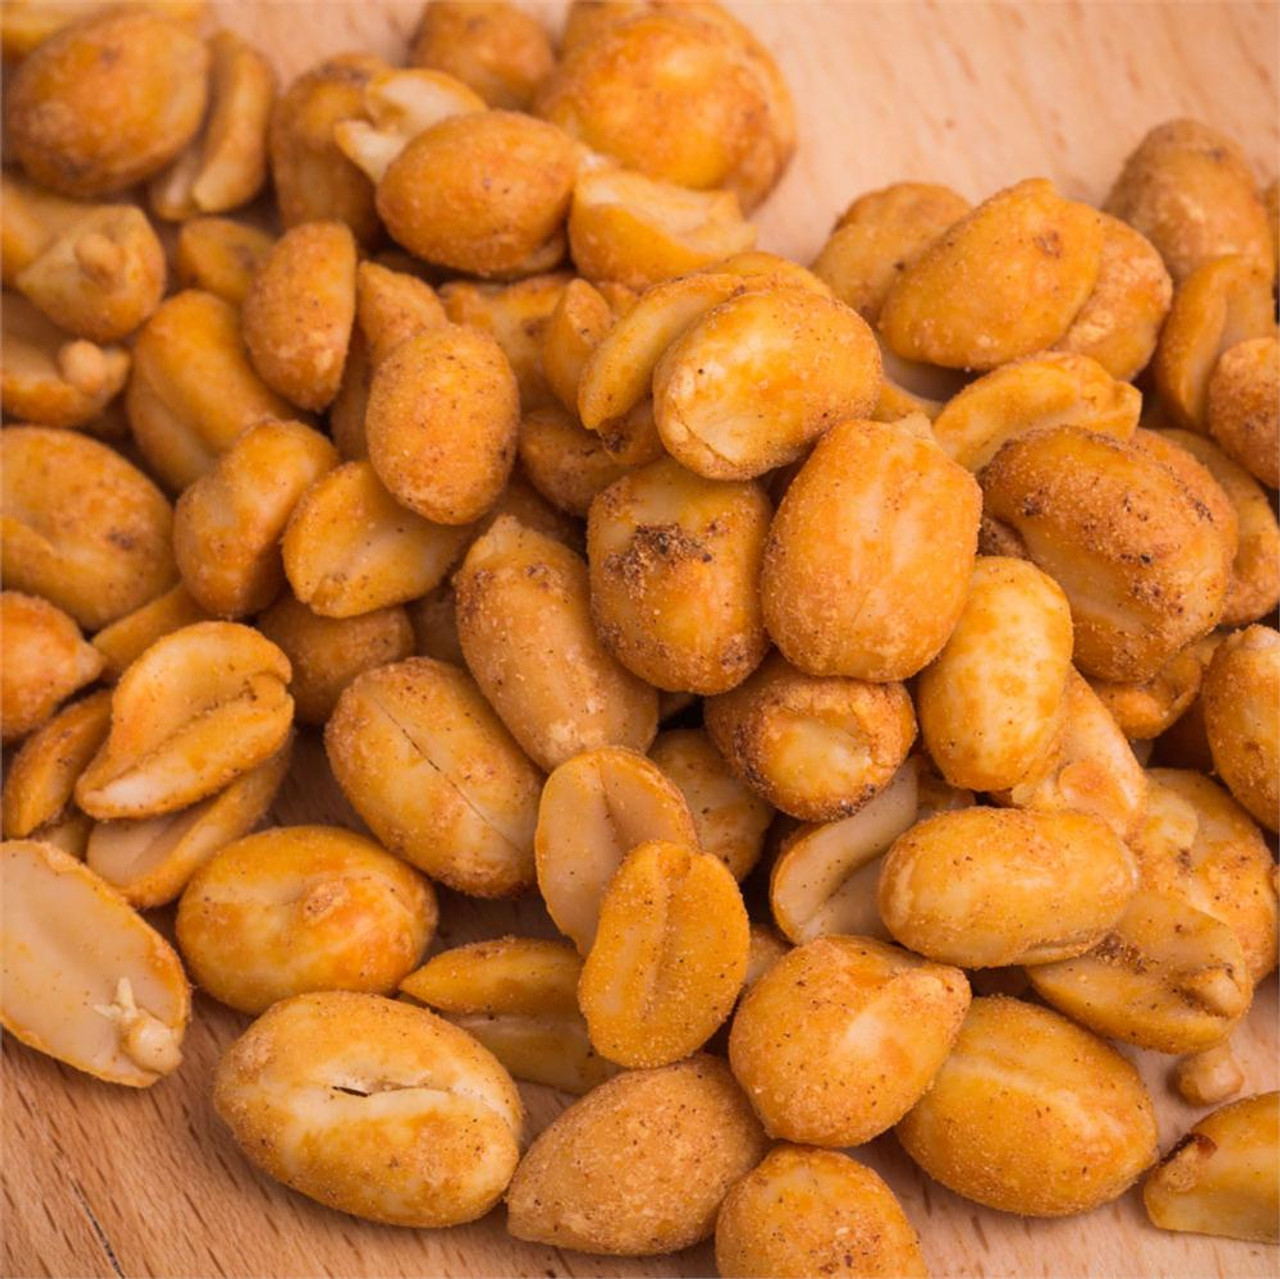 Chili Lime Peanuts 4oz